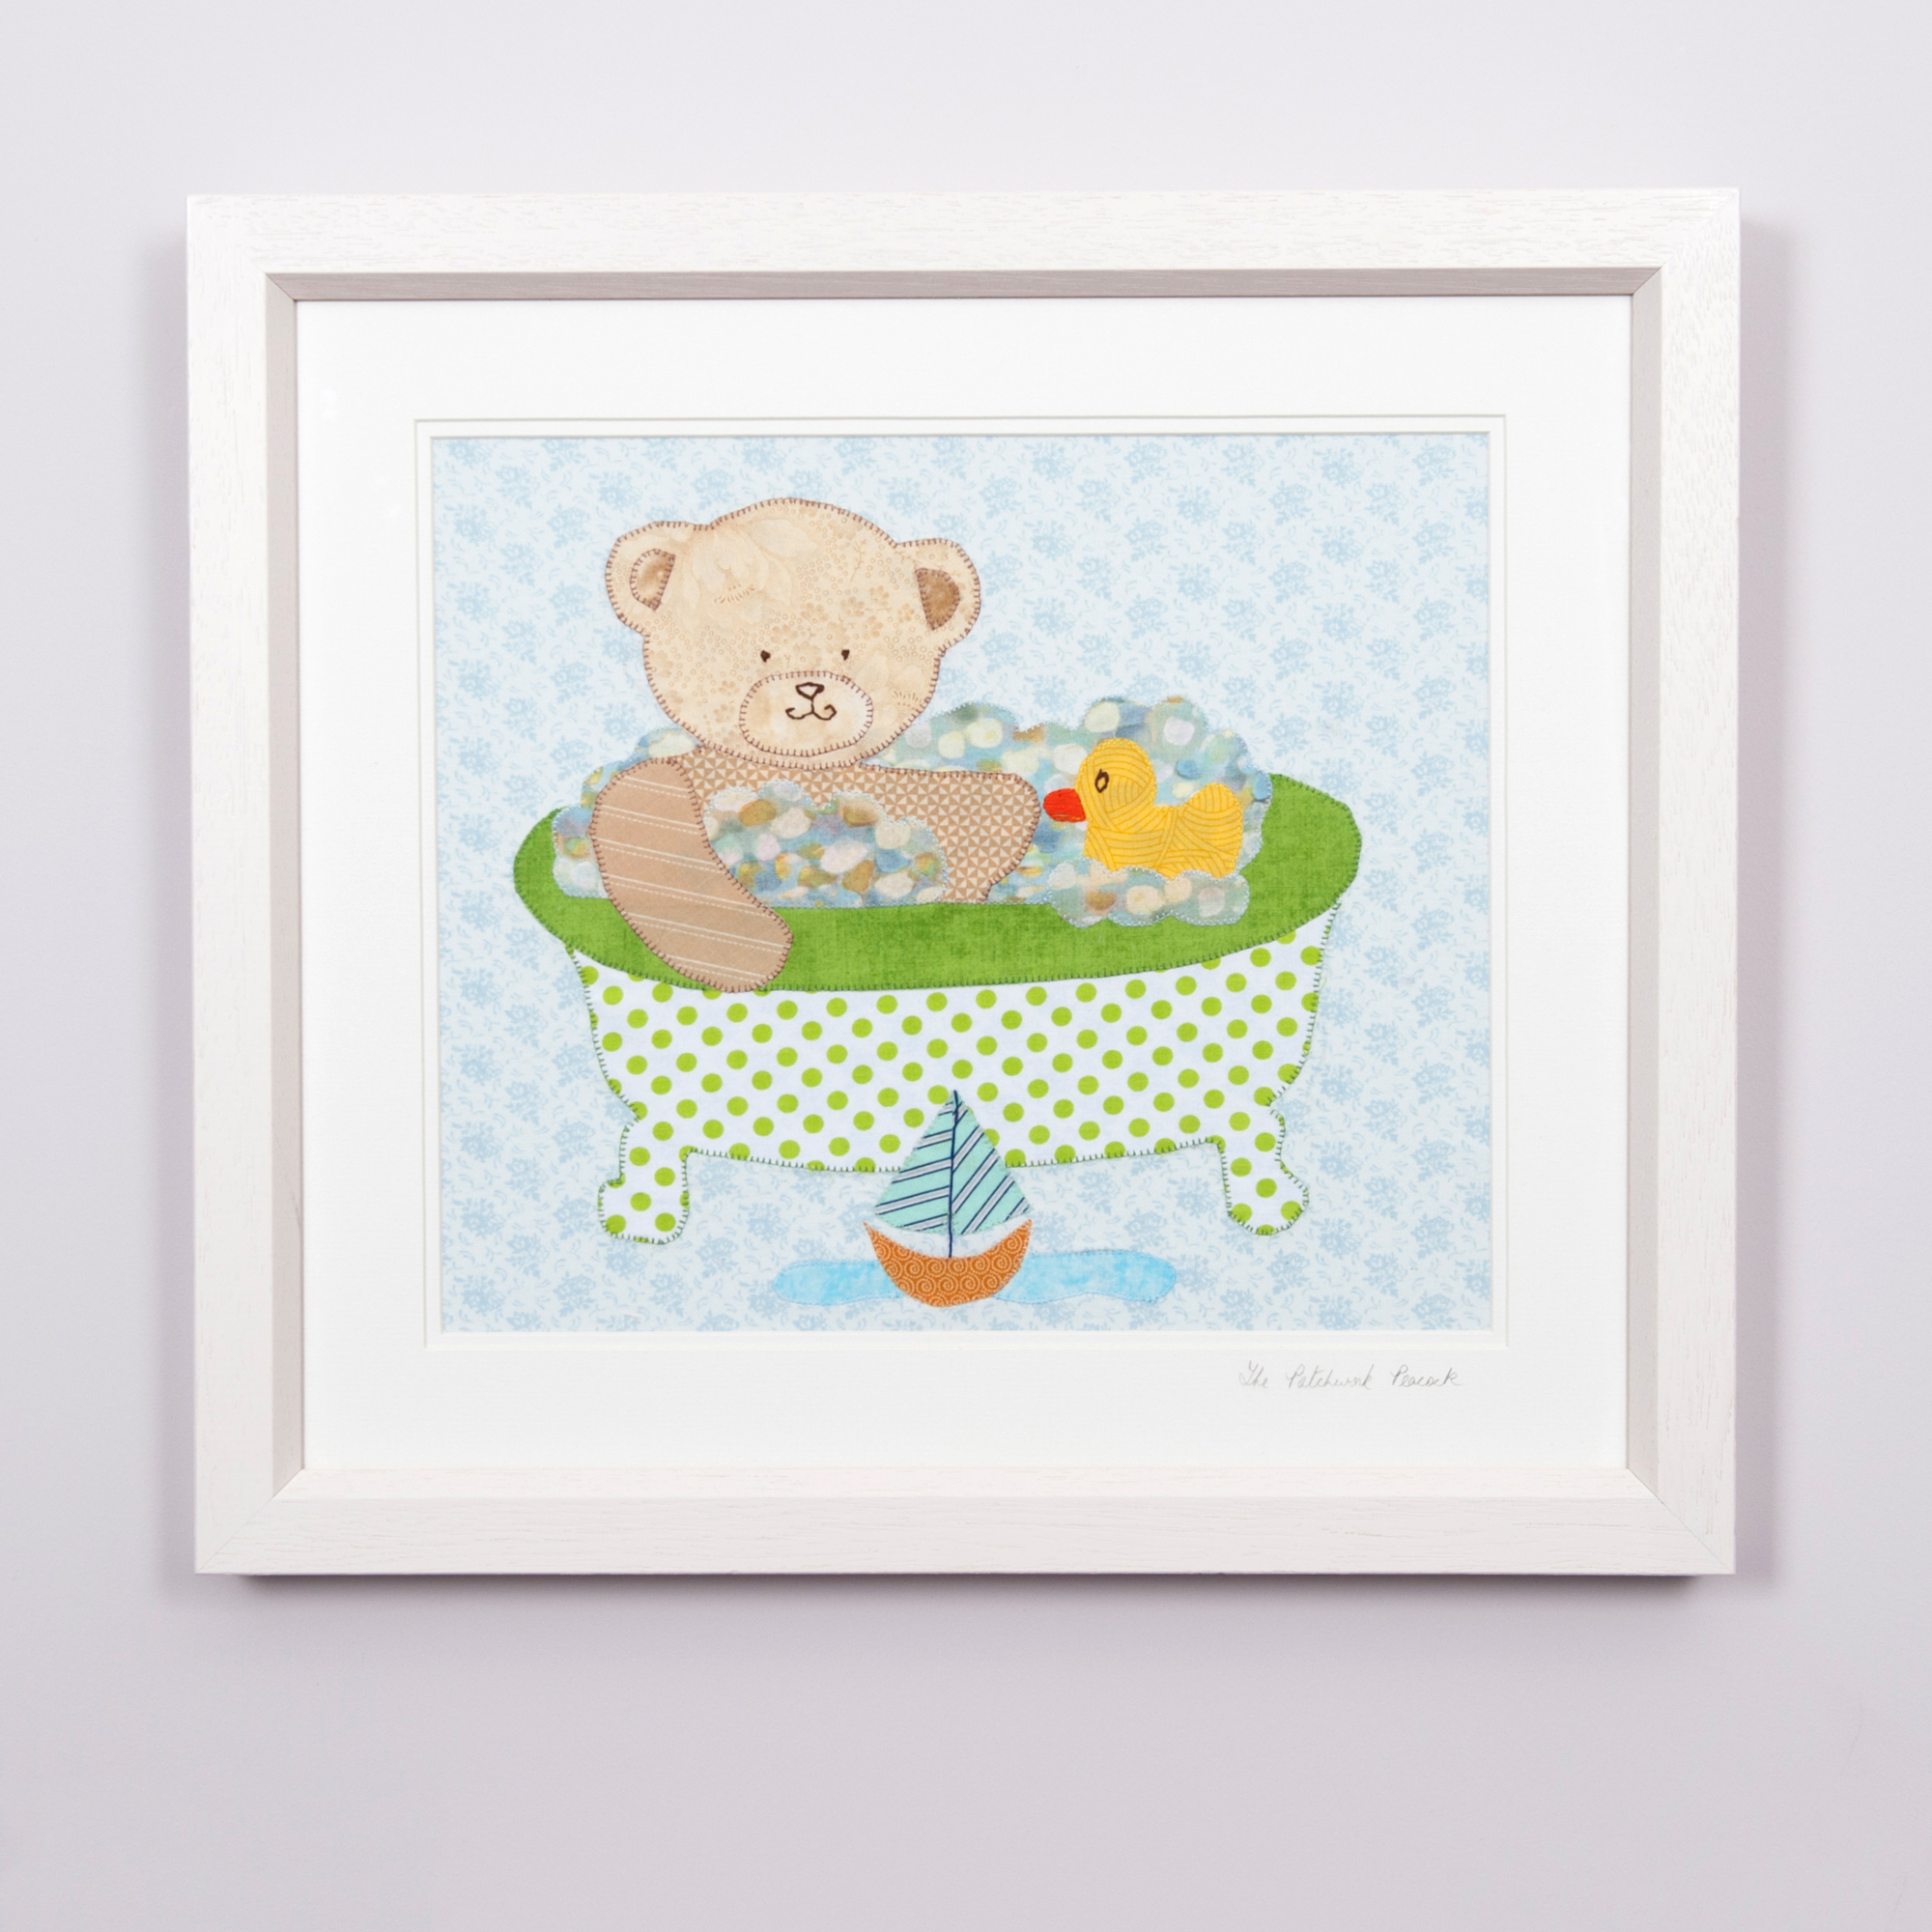 "- Teddy Bear Bath Time €9014""x12"" in an 21""x19"" frame"